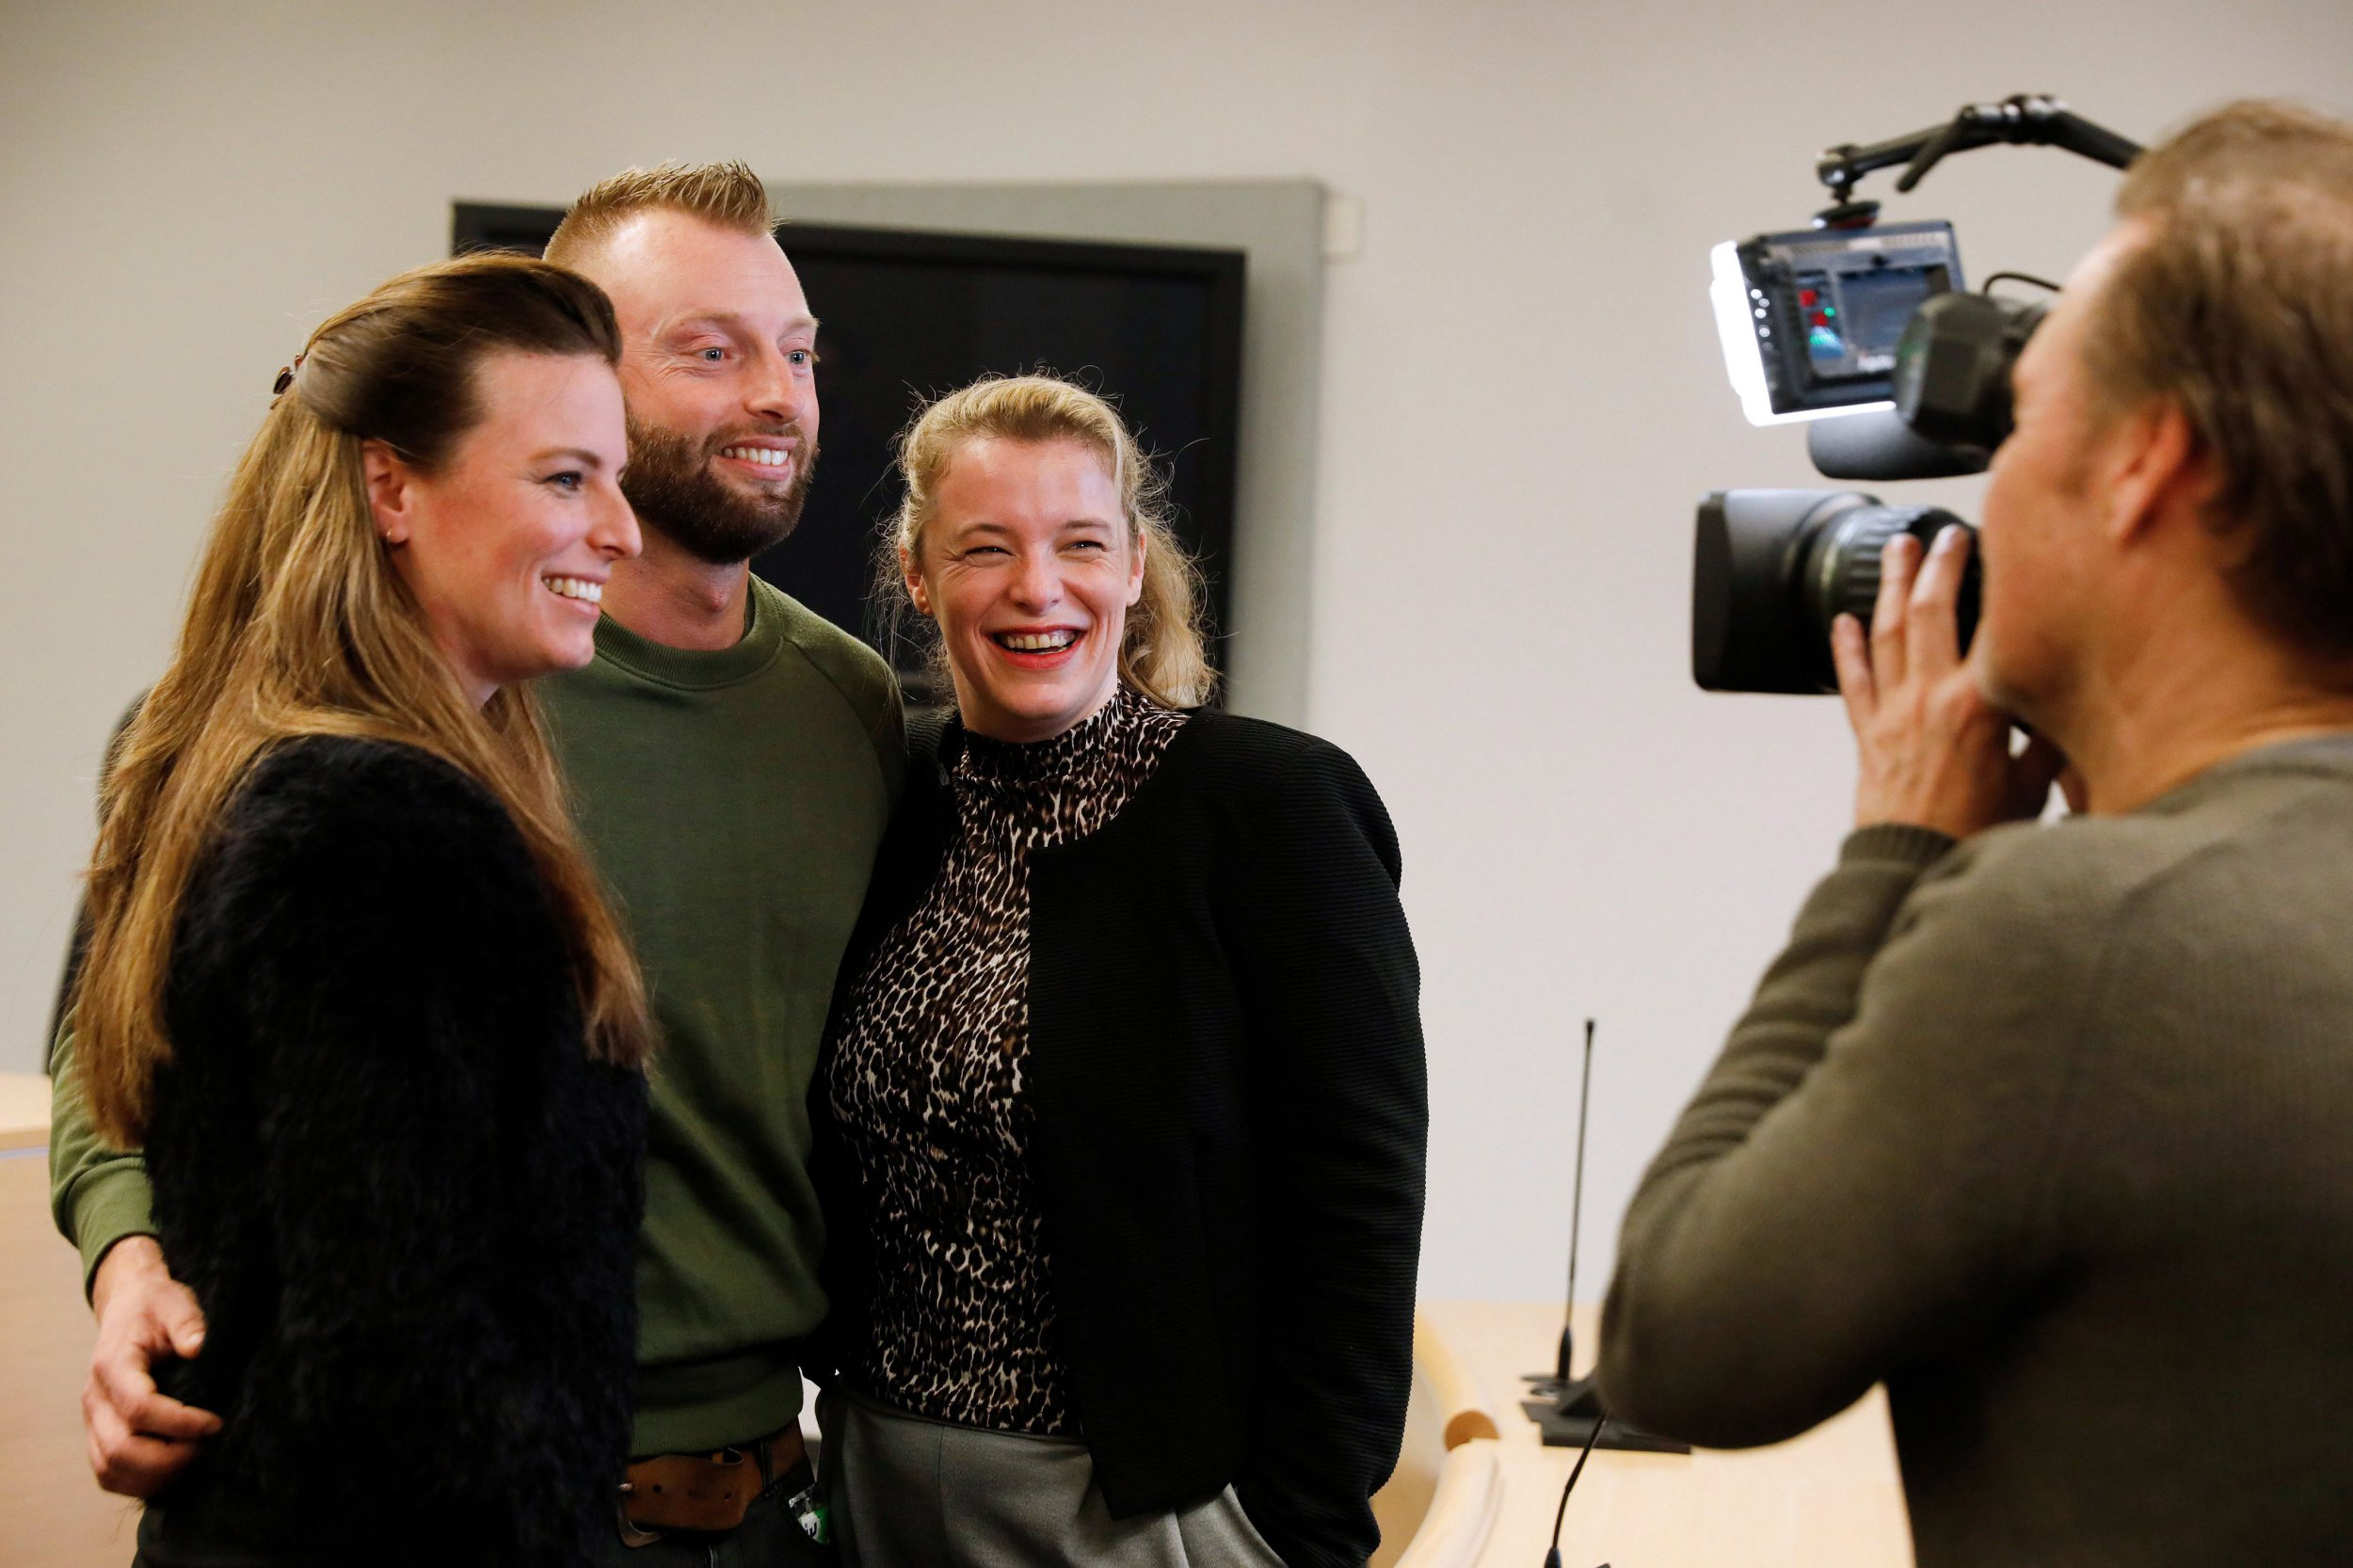 Parents and donor children react after the ruling in the case in which they demanded that the DNA of sperm doctor Jan Karbaat be compared with their DNA, in order to obtain the ultimate certainty that he was indeed their biological father, on February 13, 2019 in Rotterdam. - The now deceased owner of a clinic Jan Karbaat is said to have used his own sperm with his clients and thereby fathered 49 donor children. (Photo by Bas CZERWINSKI / ANP / AFP) / Netherlands OUT (Photo credit should read BAS CZERWINSKI/AFP/Getty Images)